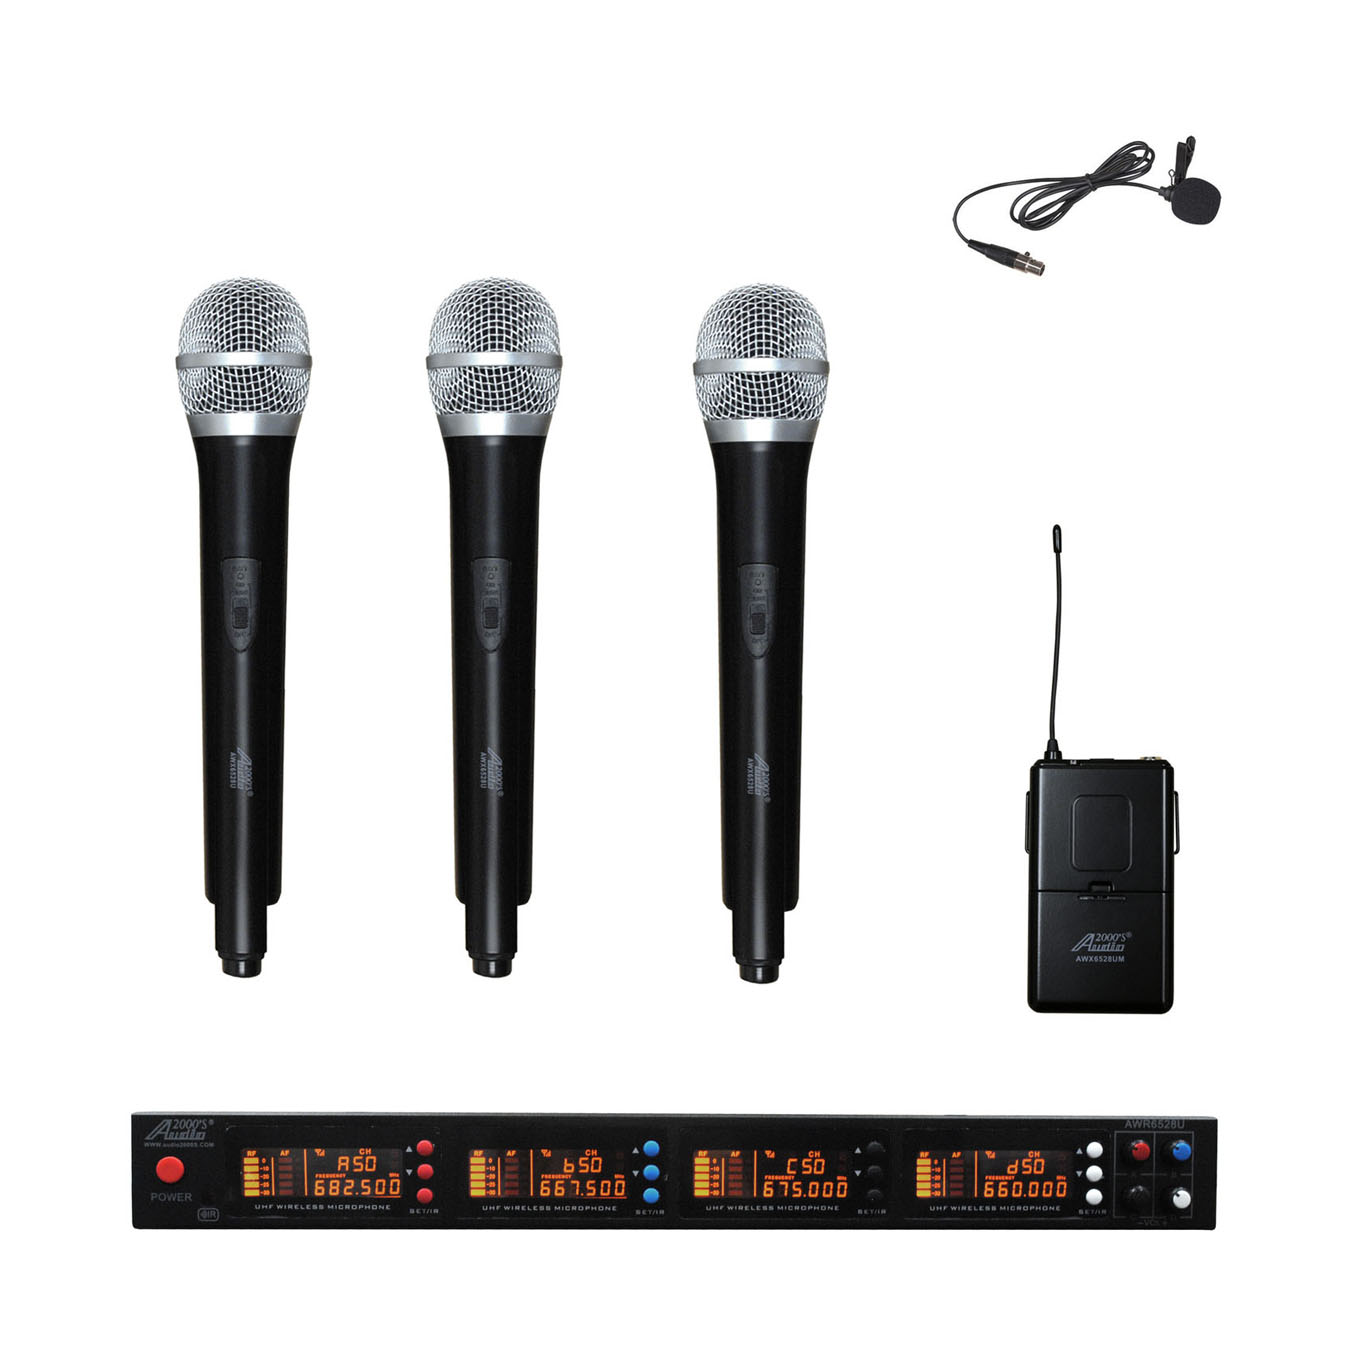 Audio2000s AWM6528H3L UHF 4 Channel Wireless Microphone w 3 Handheld & 1 Lapel Mics by